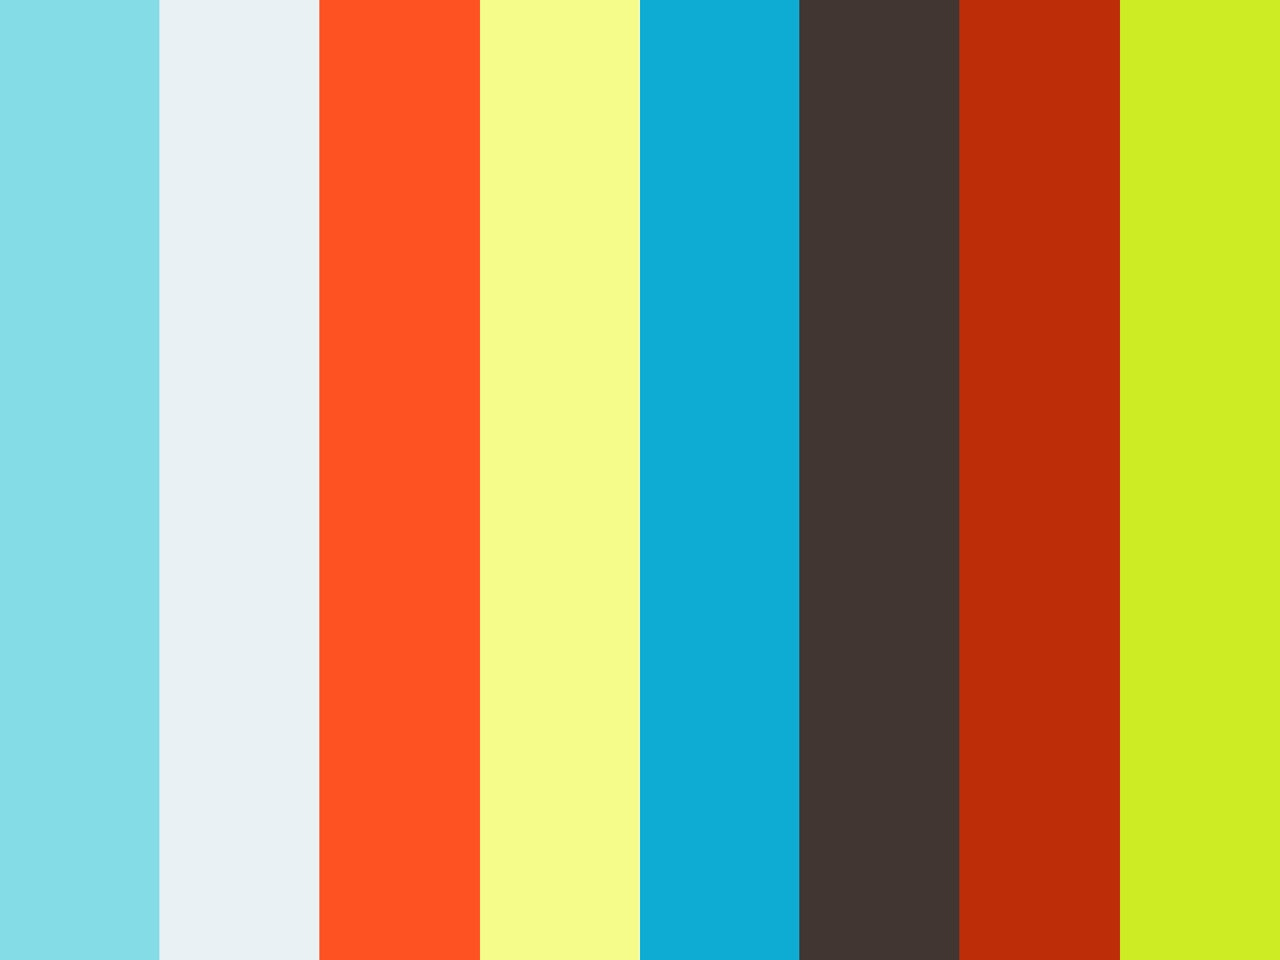 free itunes music download codes